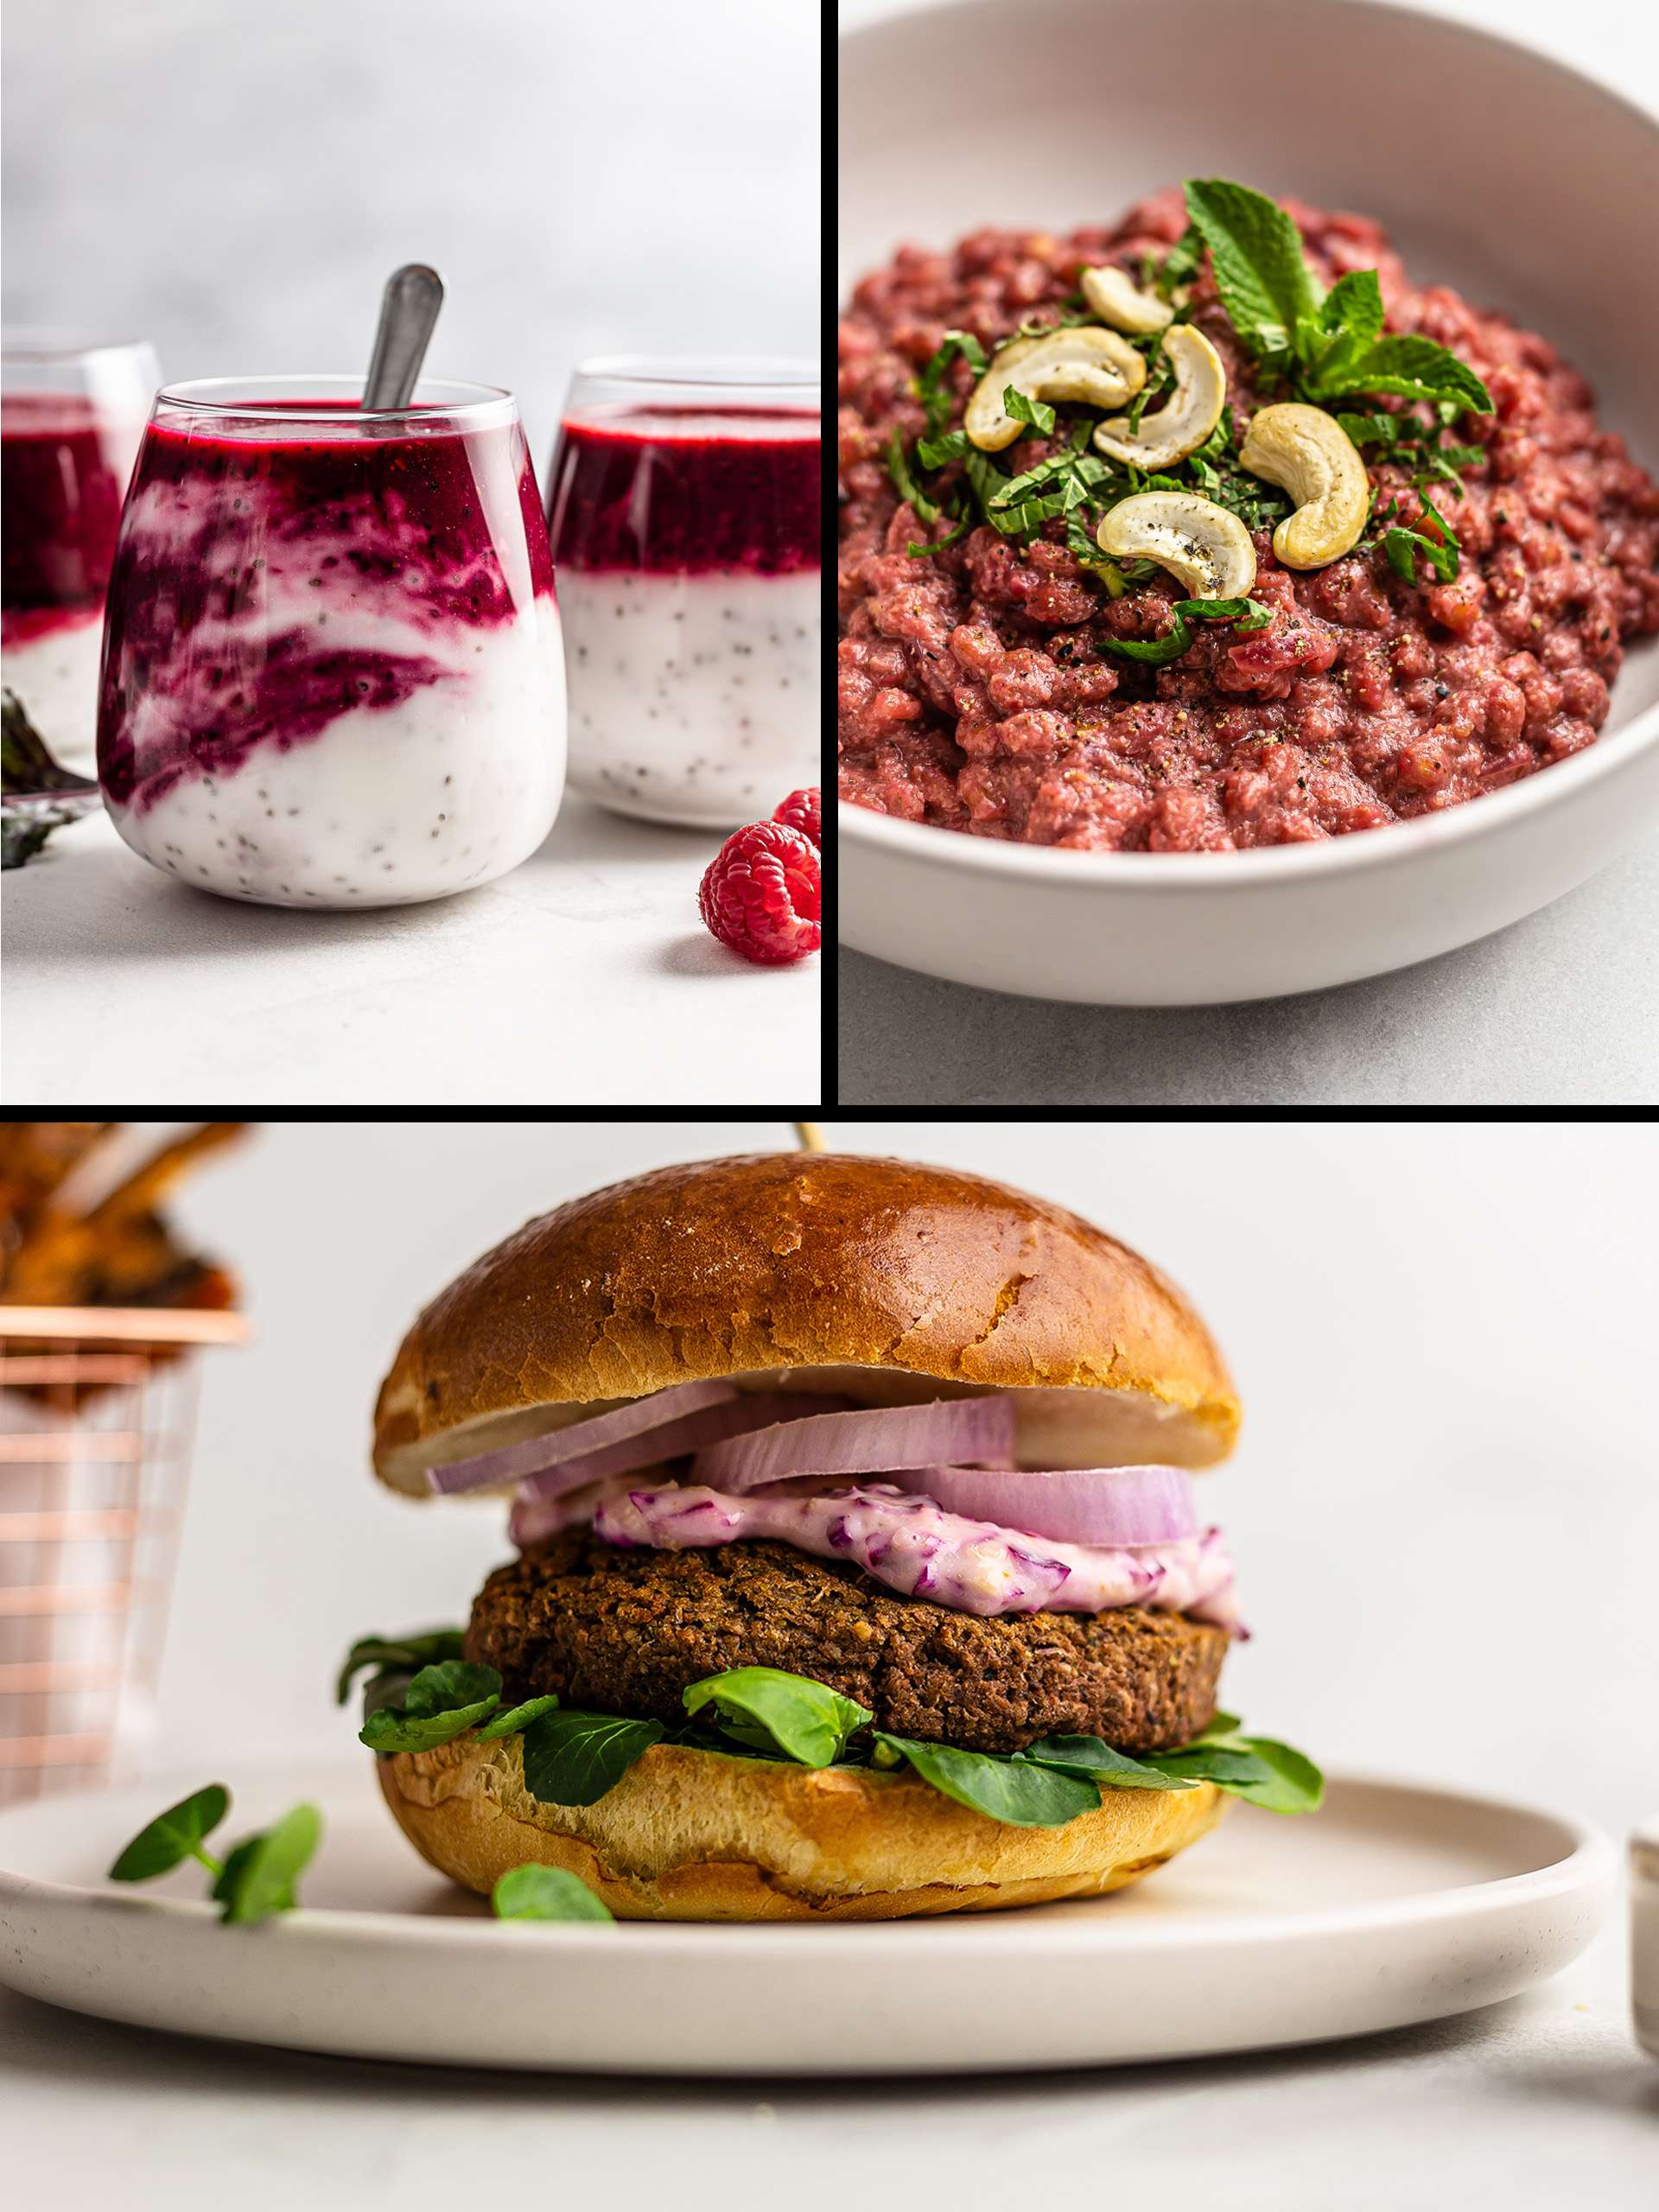 12 Antioxidant-Boost Recipes with Beets